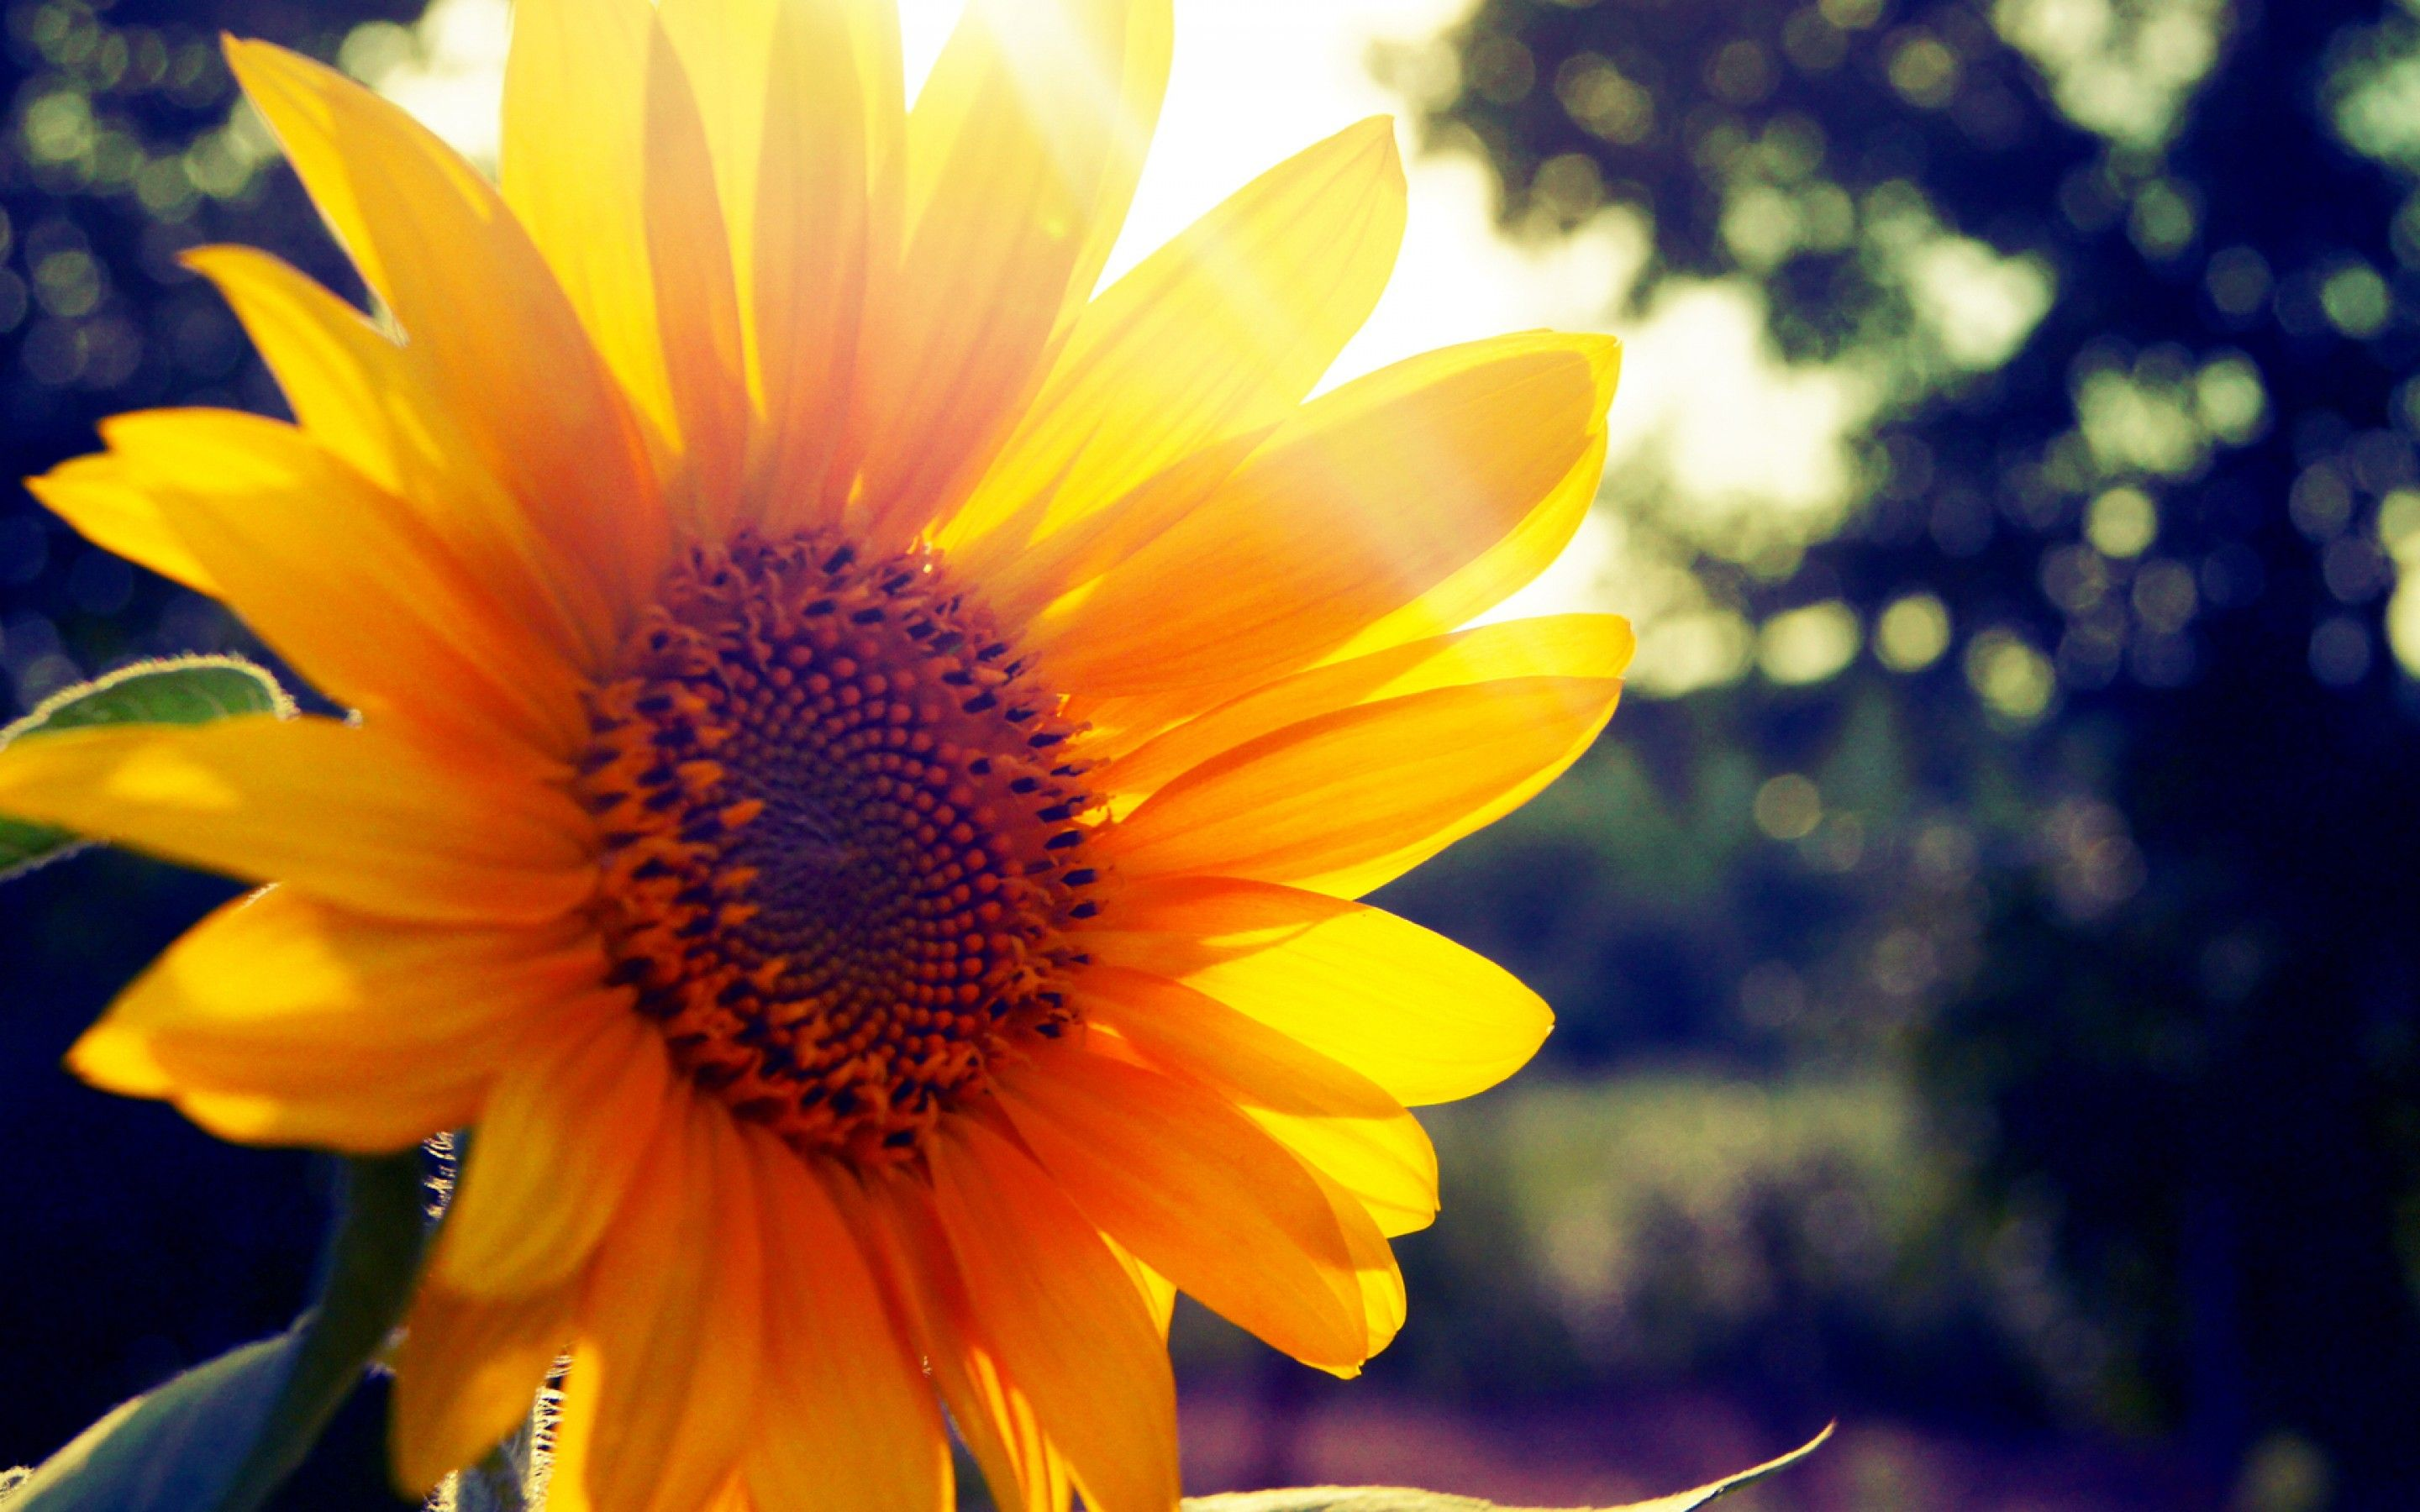 sunflower desktop wallpapers and artwork | page 2 | sunflowers